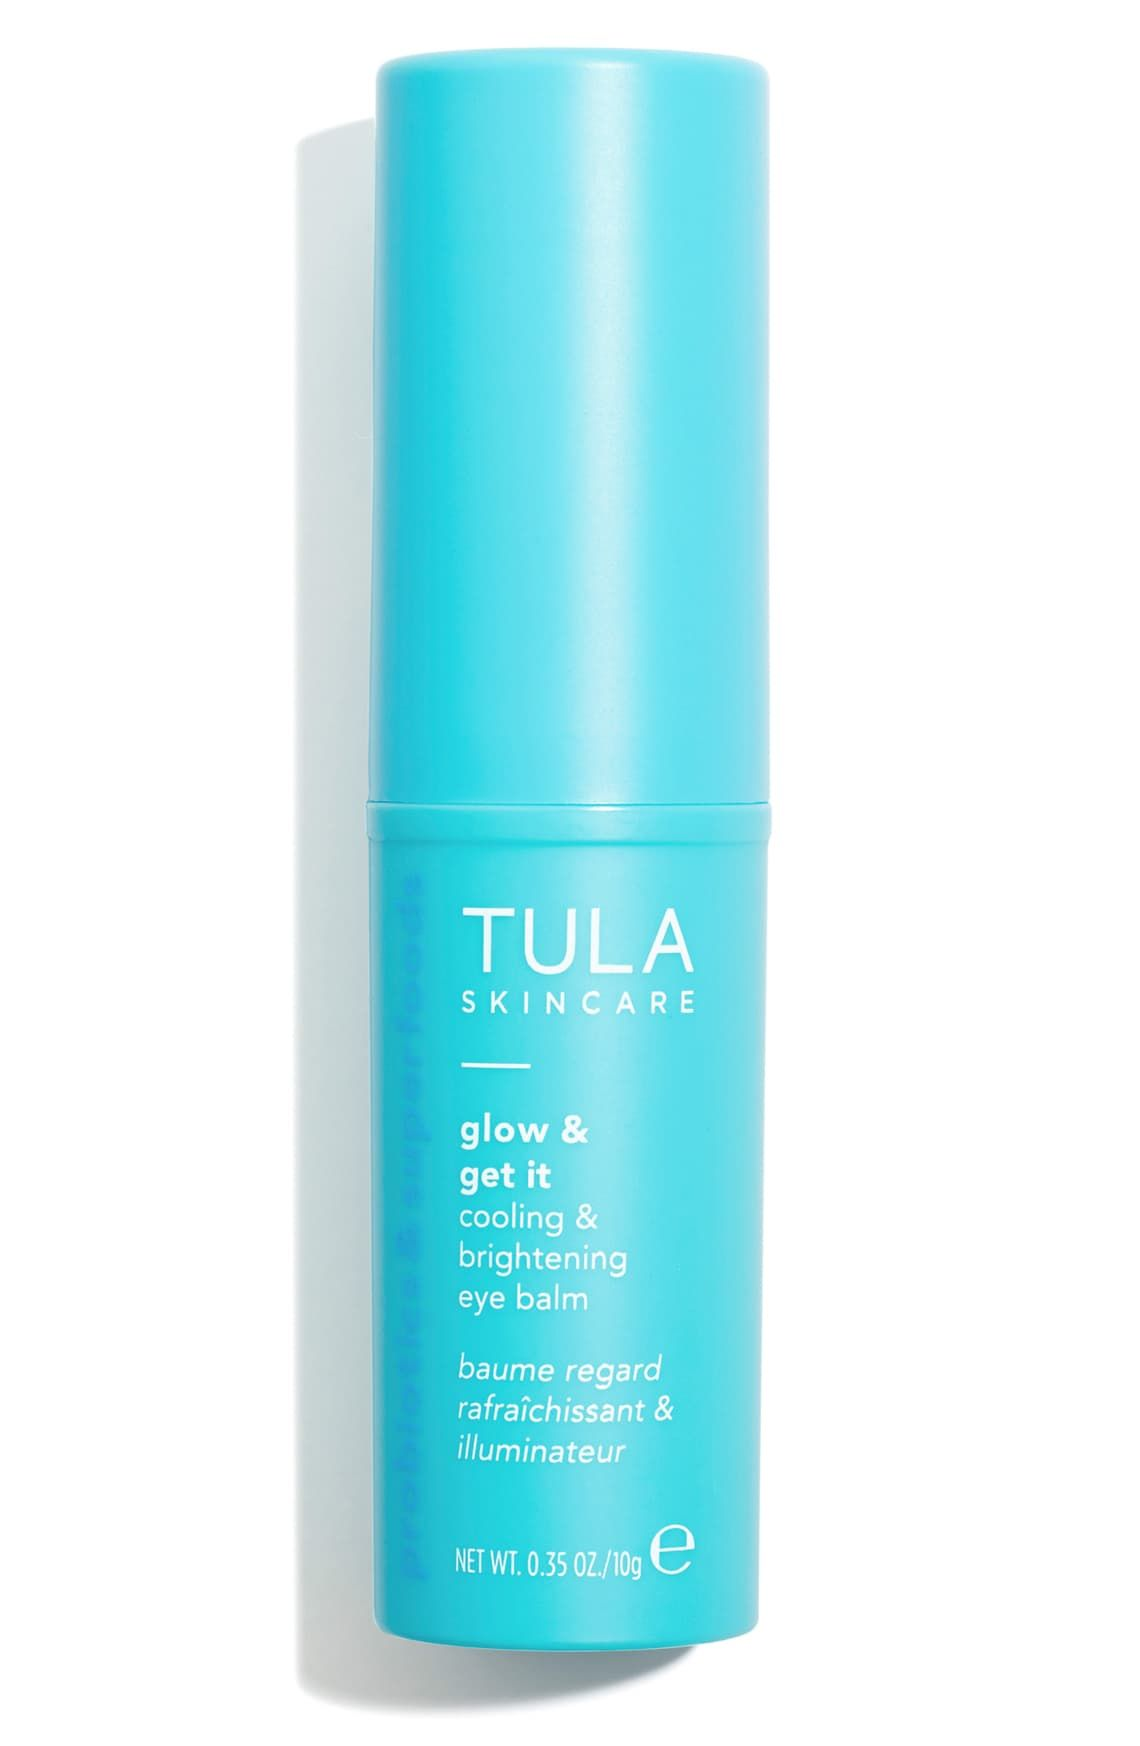 Tula Probiotic Skincare Glow Get It Cooling Brightening Eye Balm Nordstrom Glowing Skincare Tula Skincare The Balm